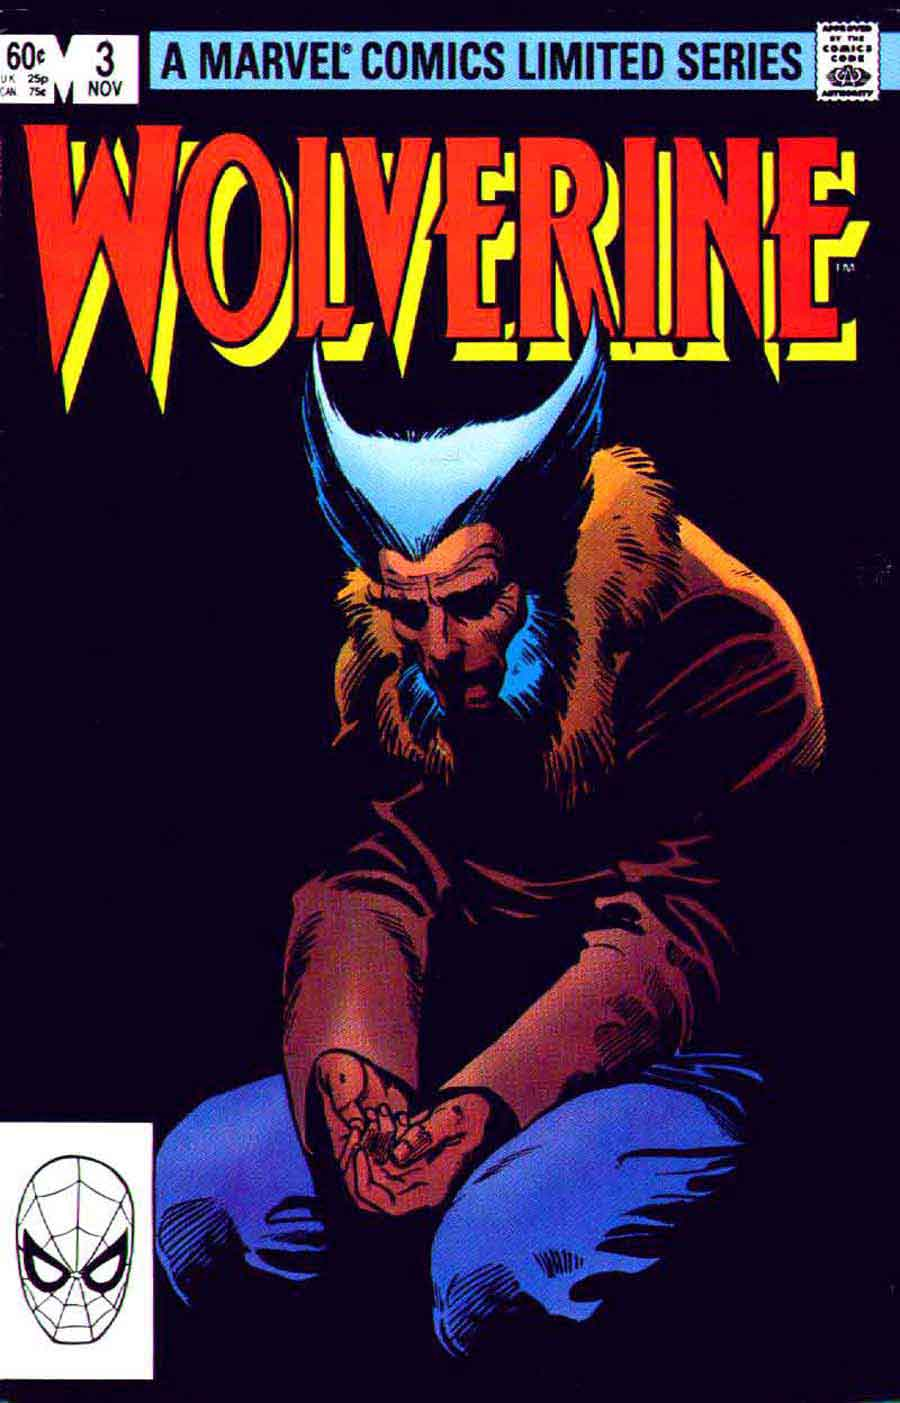 Minimalist Comic Book Covers : Wolverine frank miller art cover pencil ink